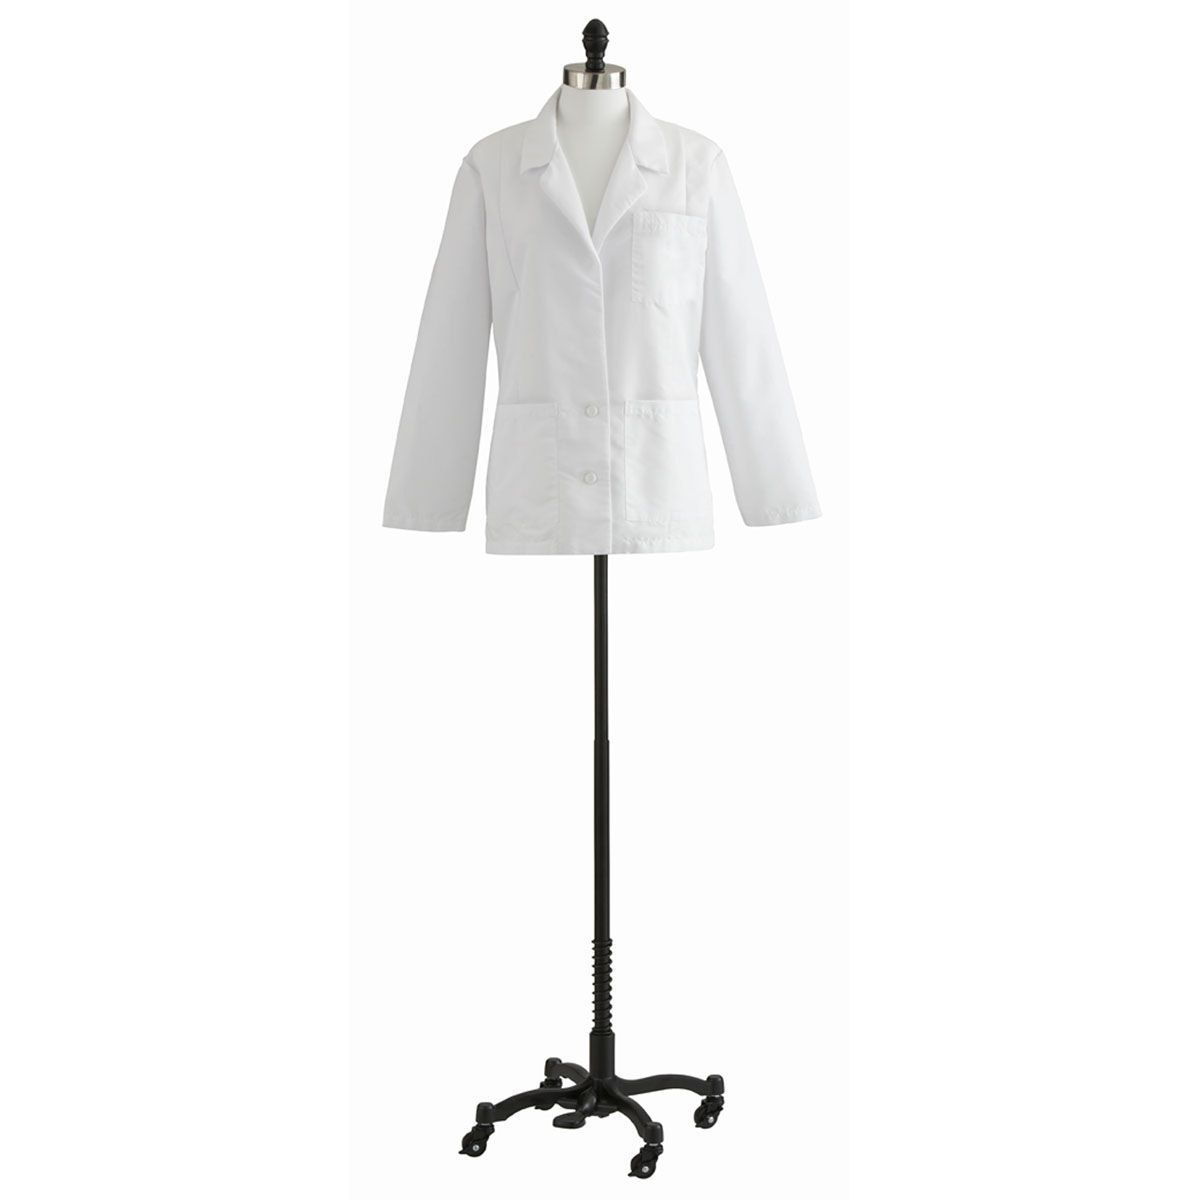 Medline Ladies Consultation Coat - White, 24, Each - Model 88018QHW24